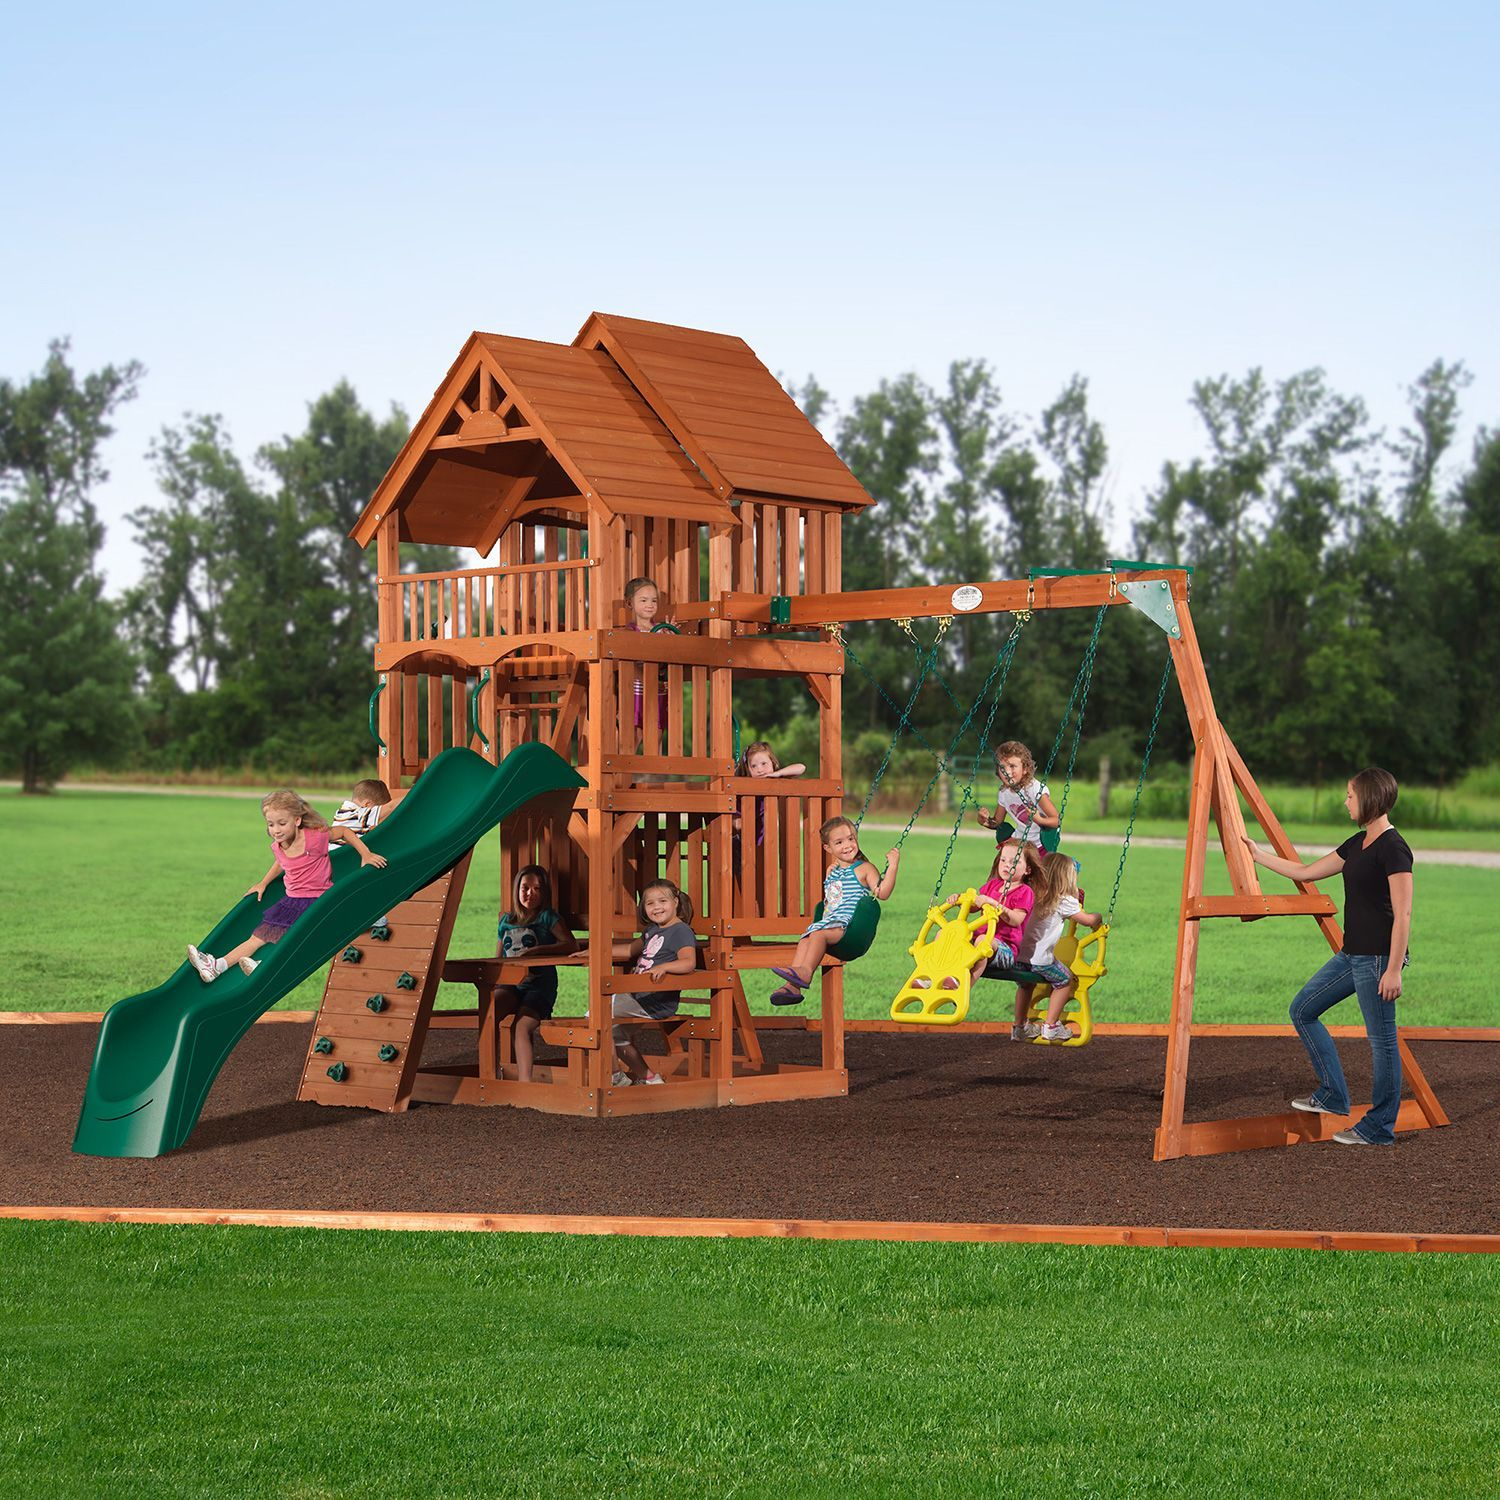 highlander deluxe cedar swing play set with slide